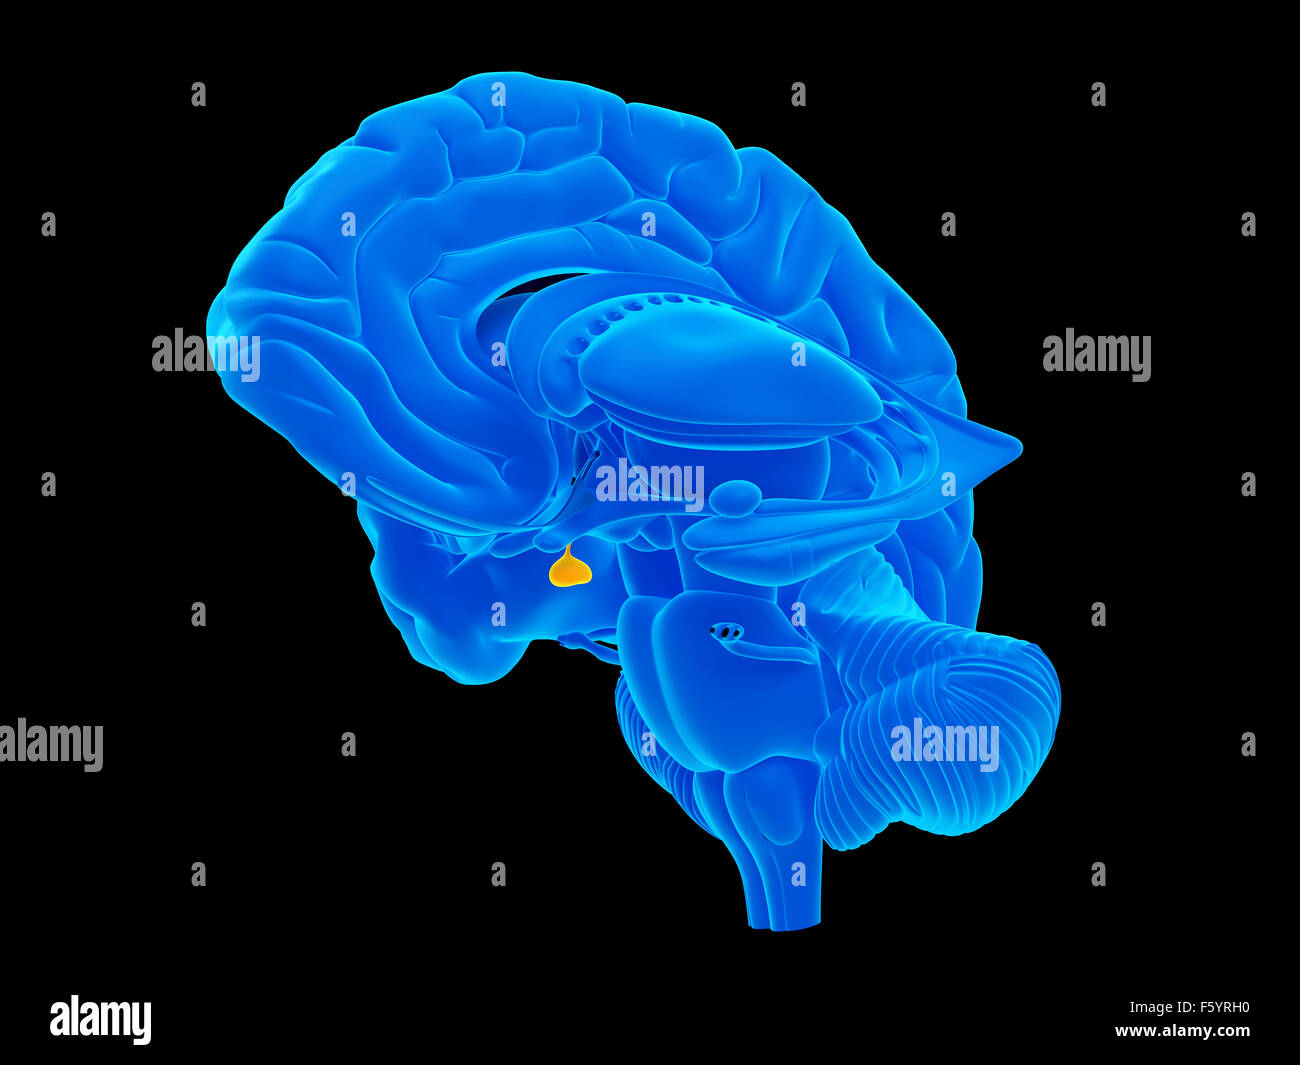 Pituitary Gland Stock Photos Pituitary Gland Stock Images Alamy